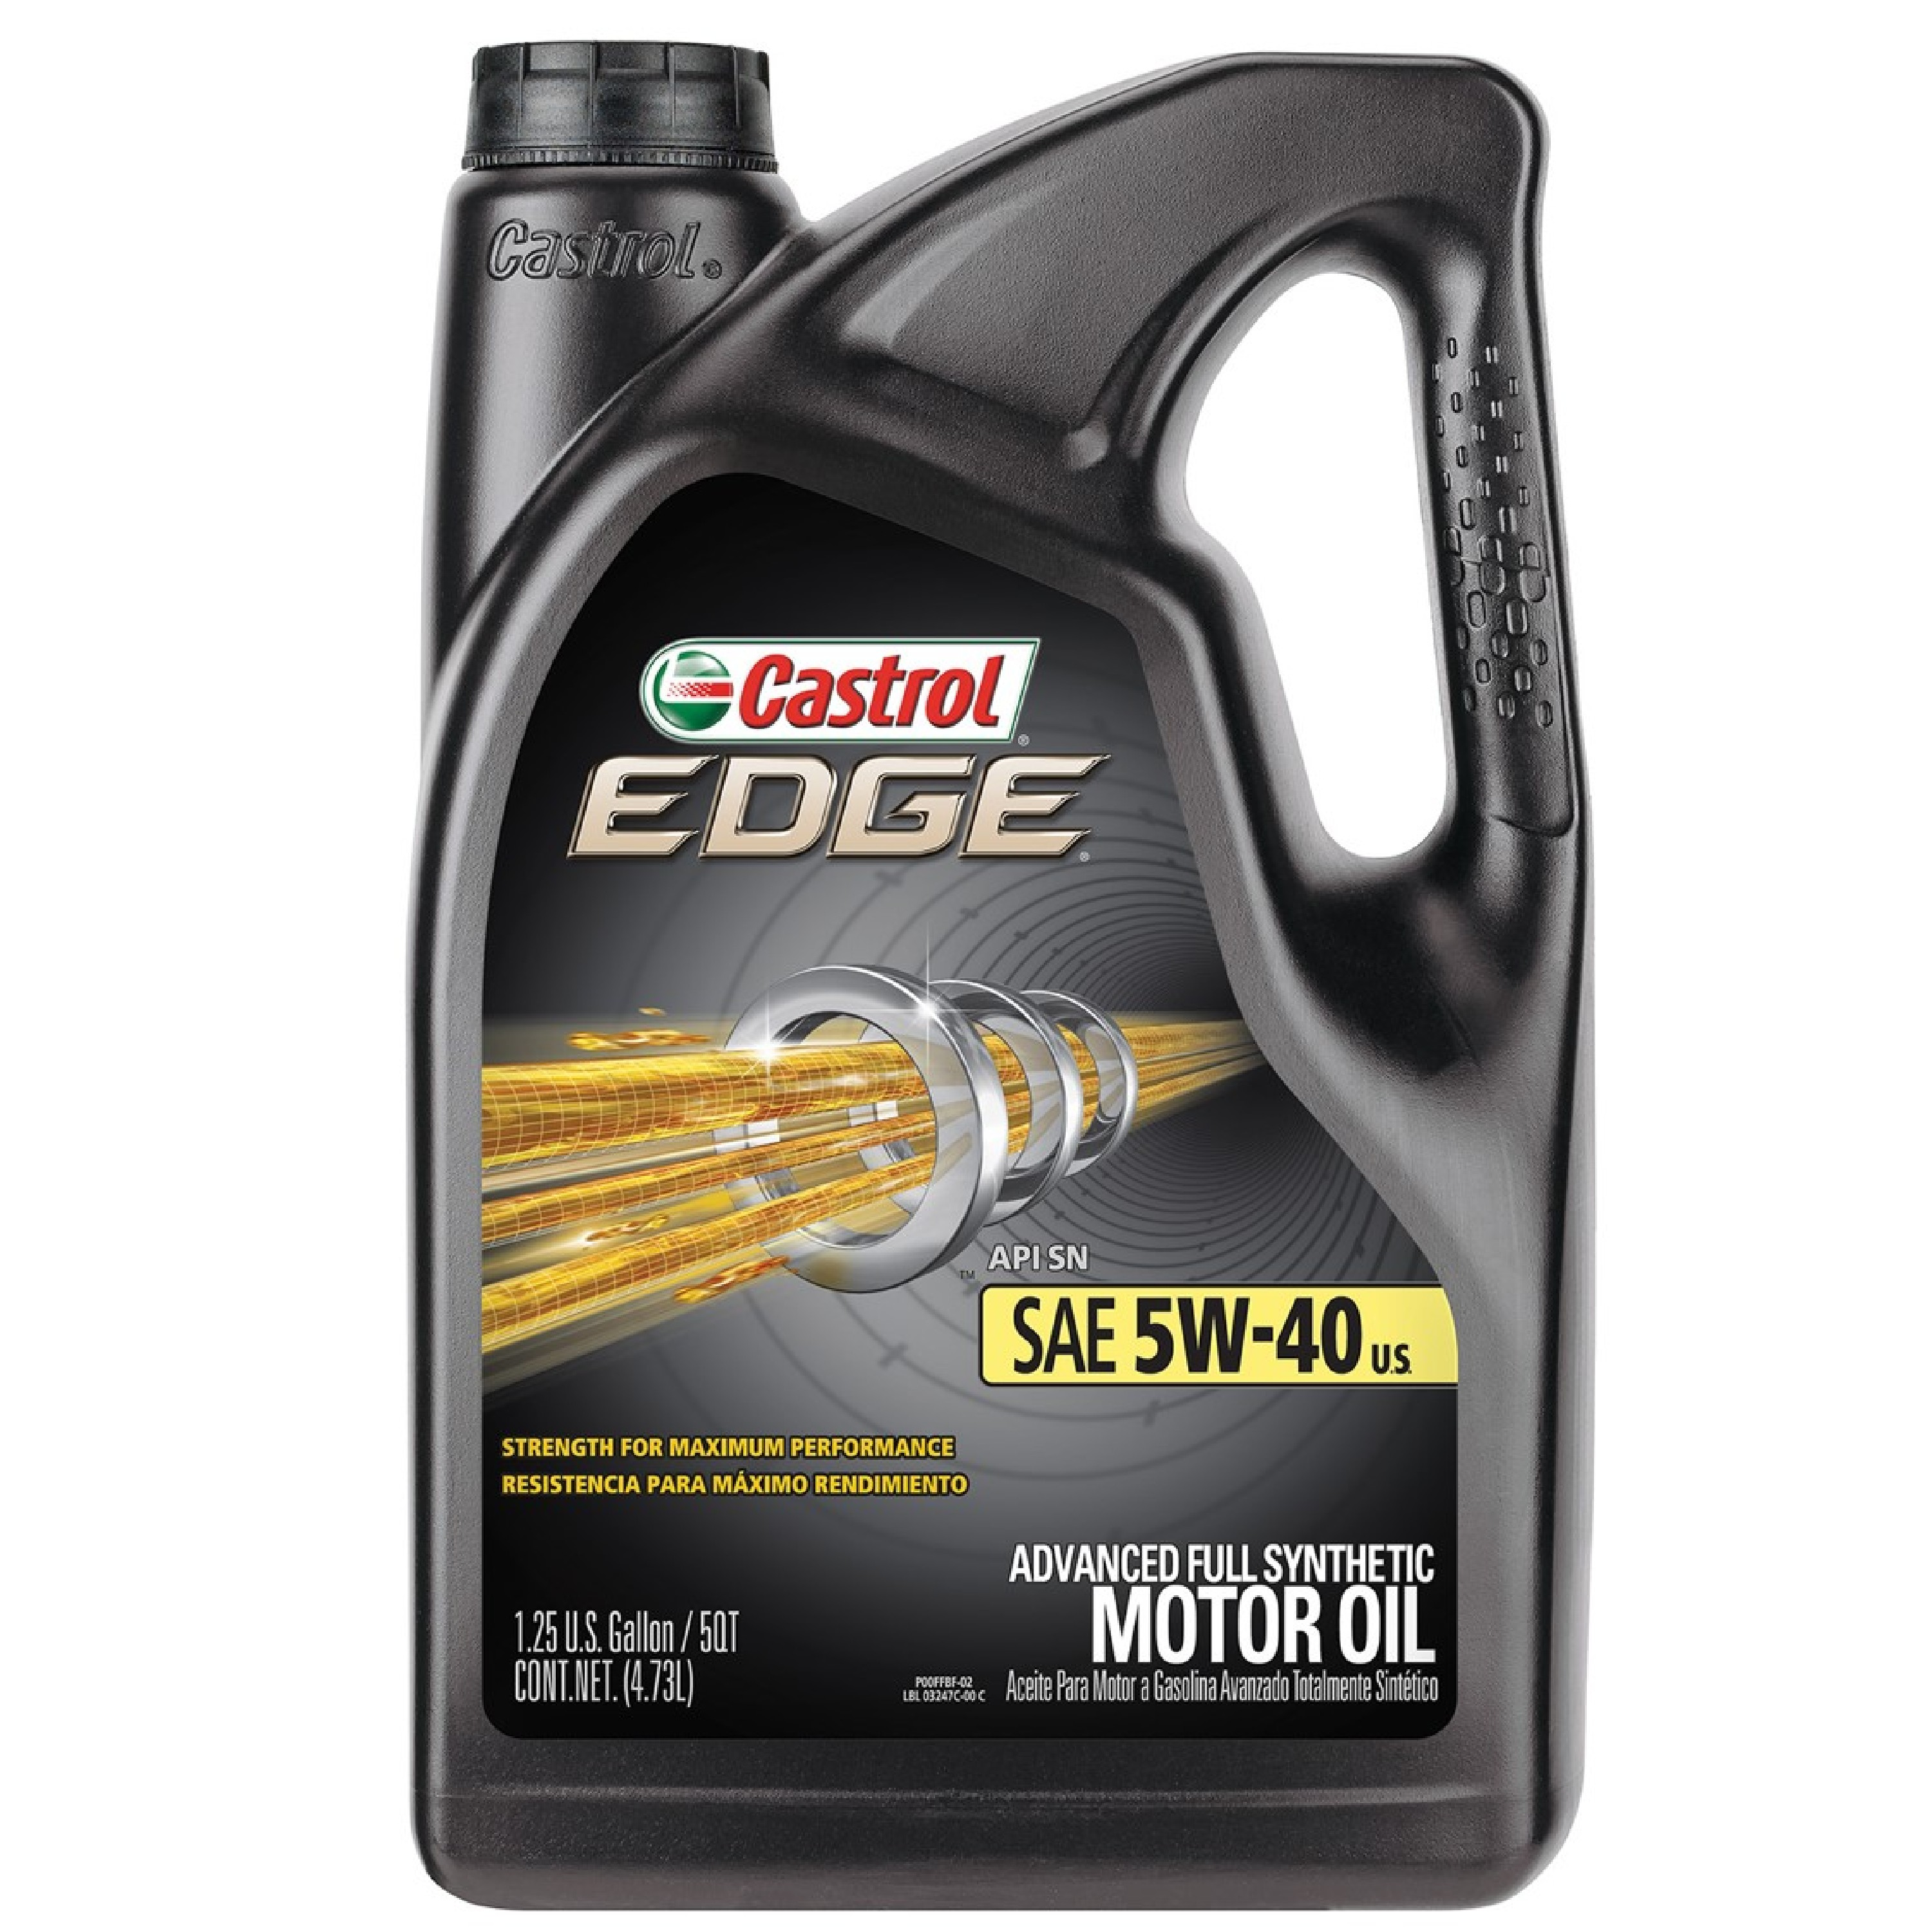 Castrol EDGE 5W-40 Full Synthetic Motor Oil, 5 QT by Castrol